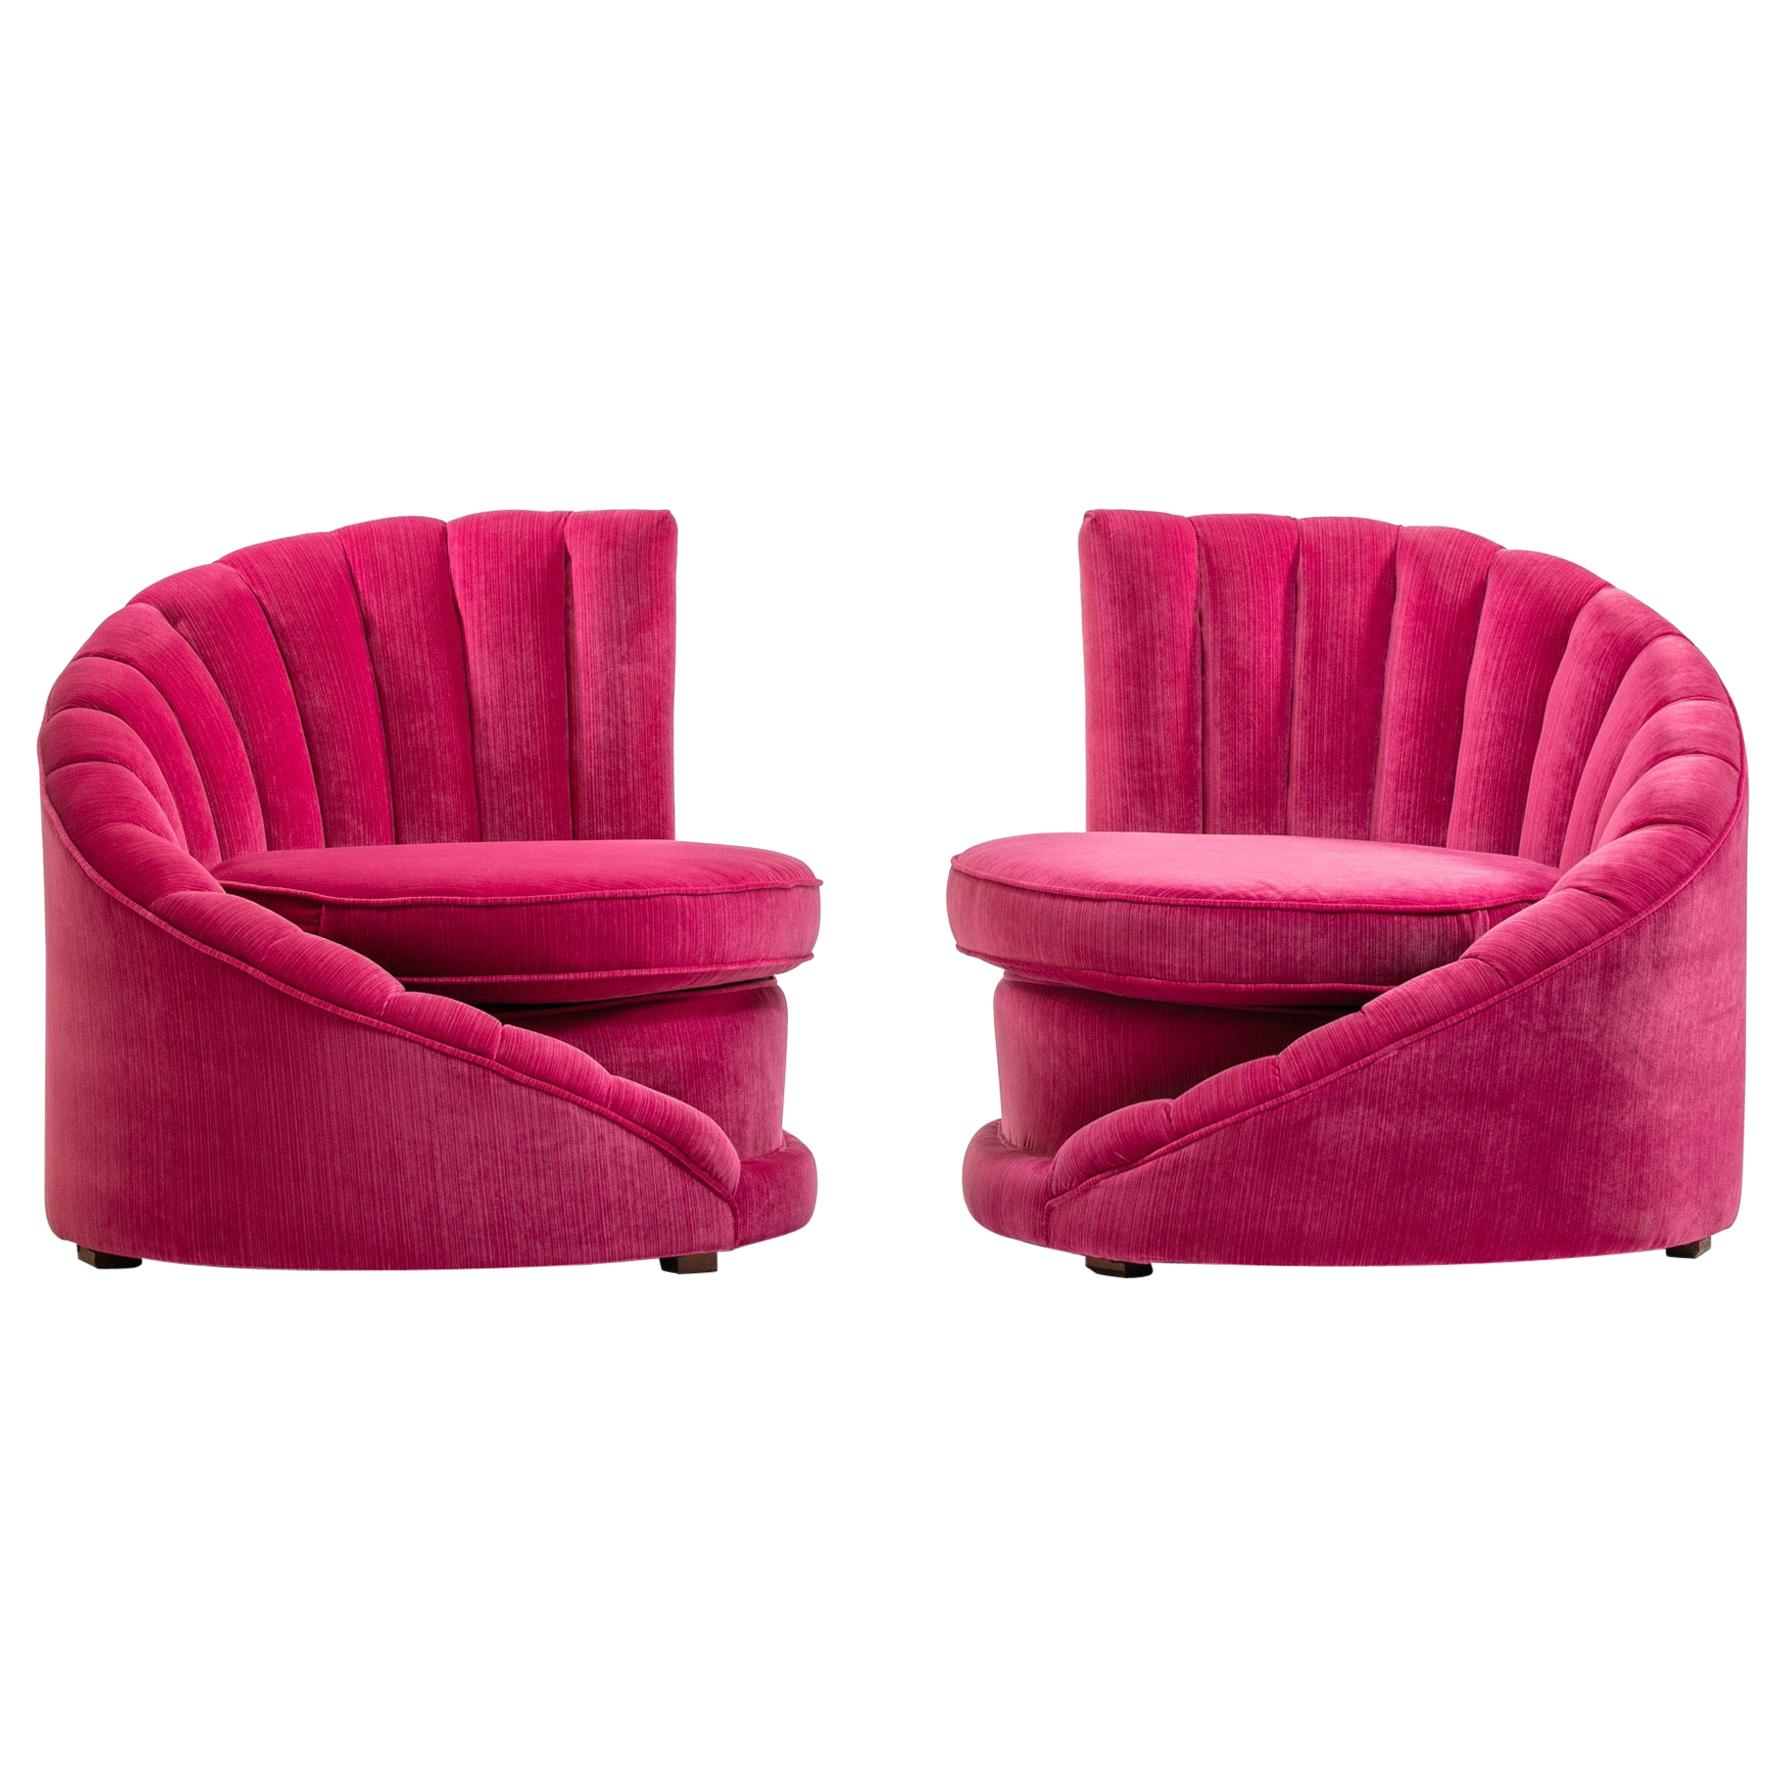 Delicieux Pair Of Hollywood Regency Asymmetrical Slipper Chairs In Hot Pink Strie  Velvet For Sale